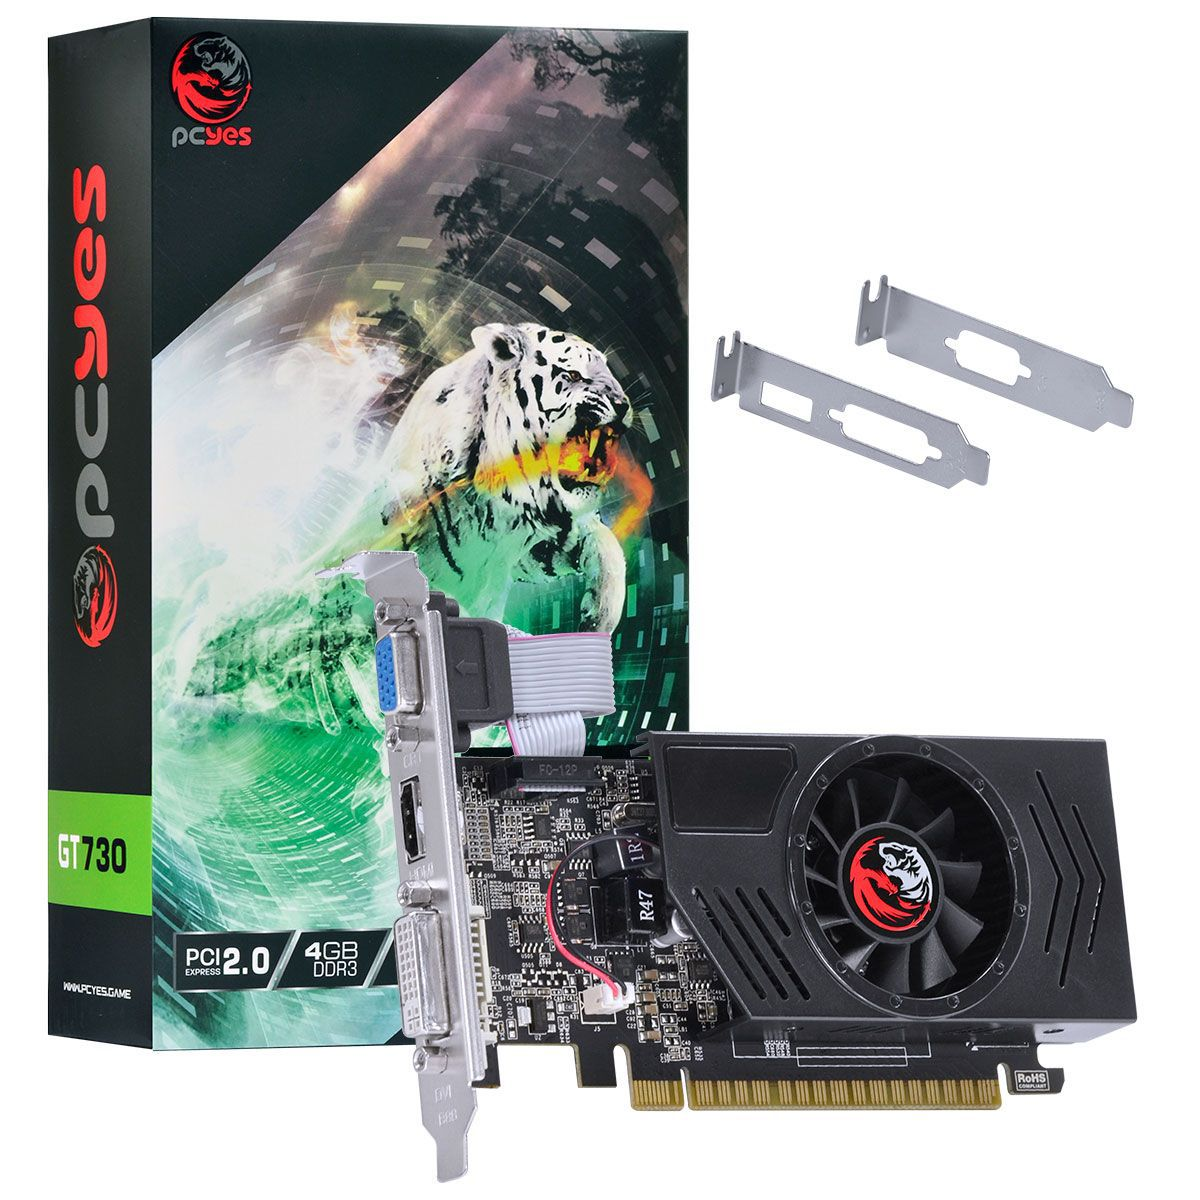 Placa de Vídeo Geforce GT 730 4GB DDR3 128Bits com kit low profile PA730GT12804D3 - Pcyes